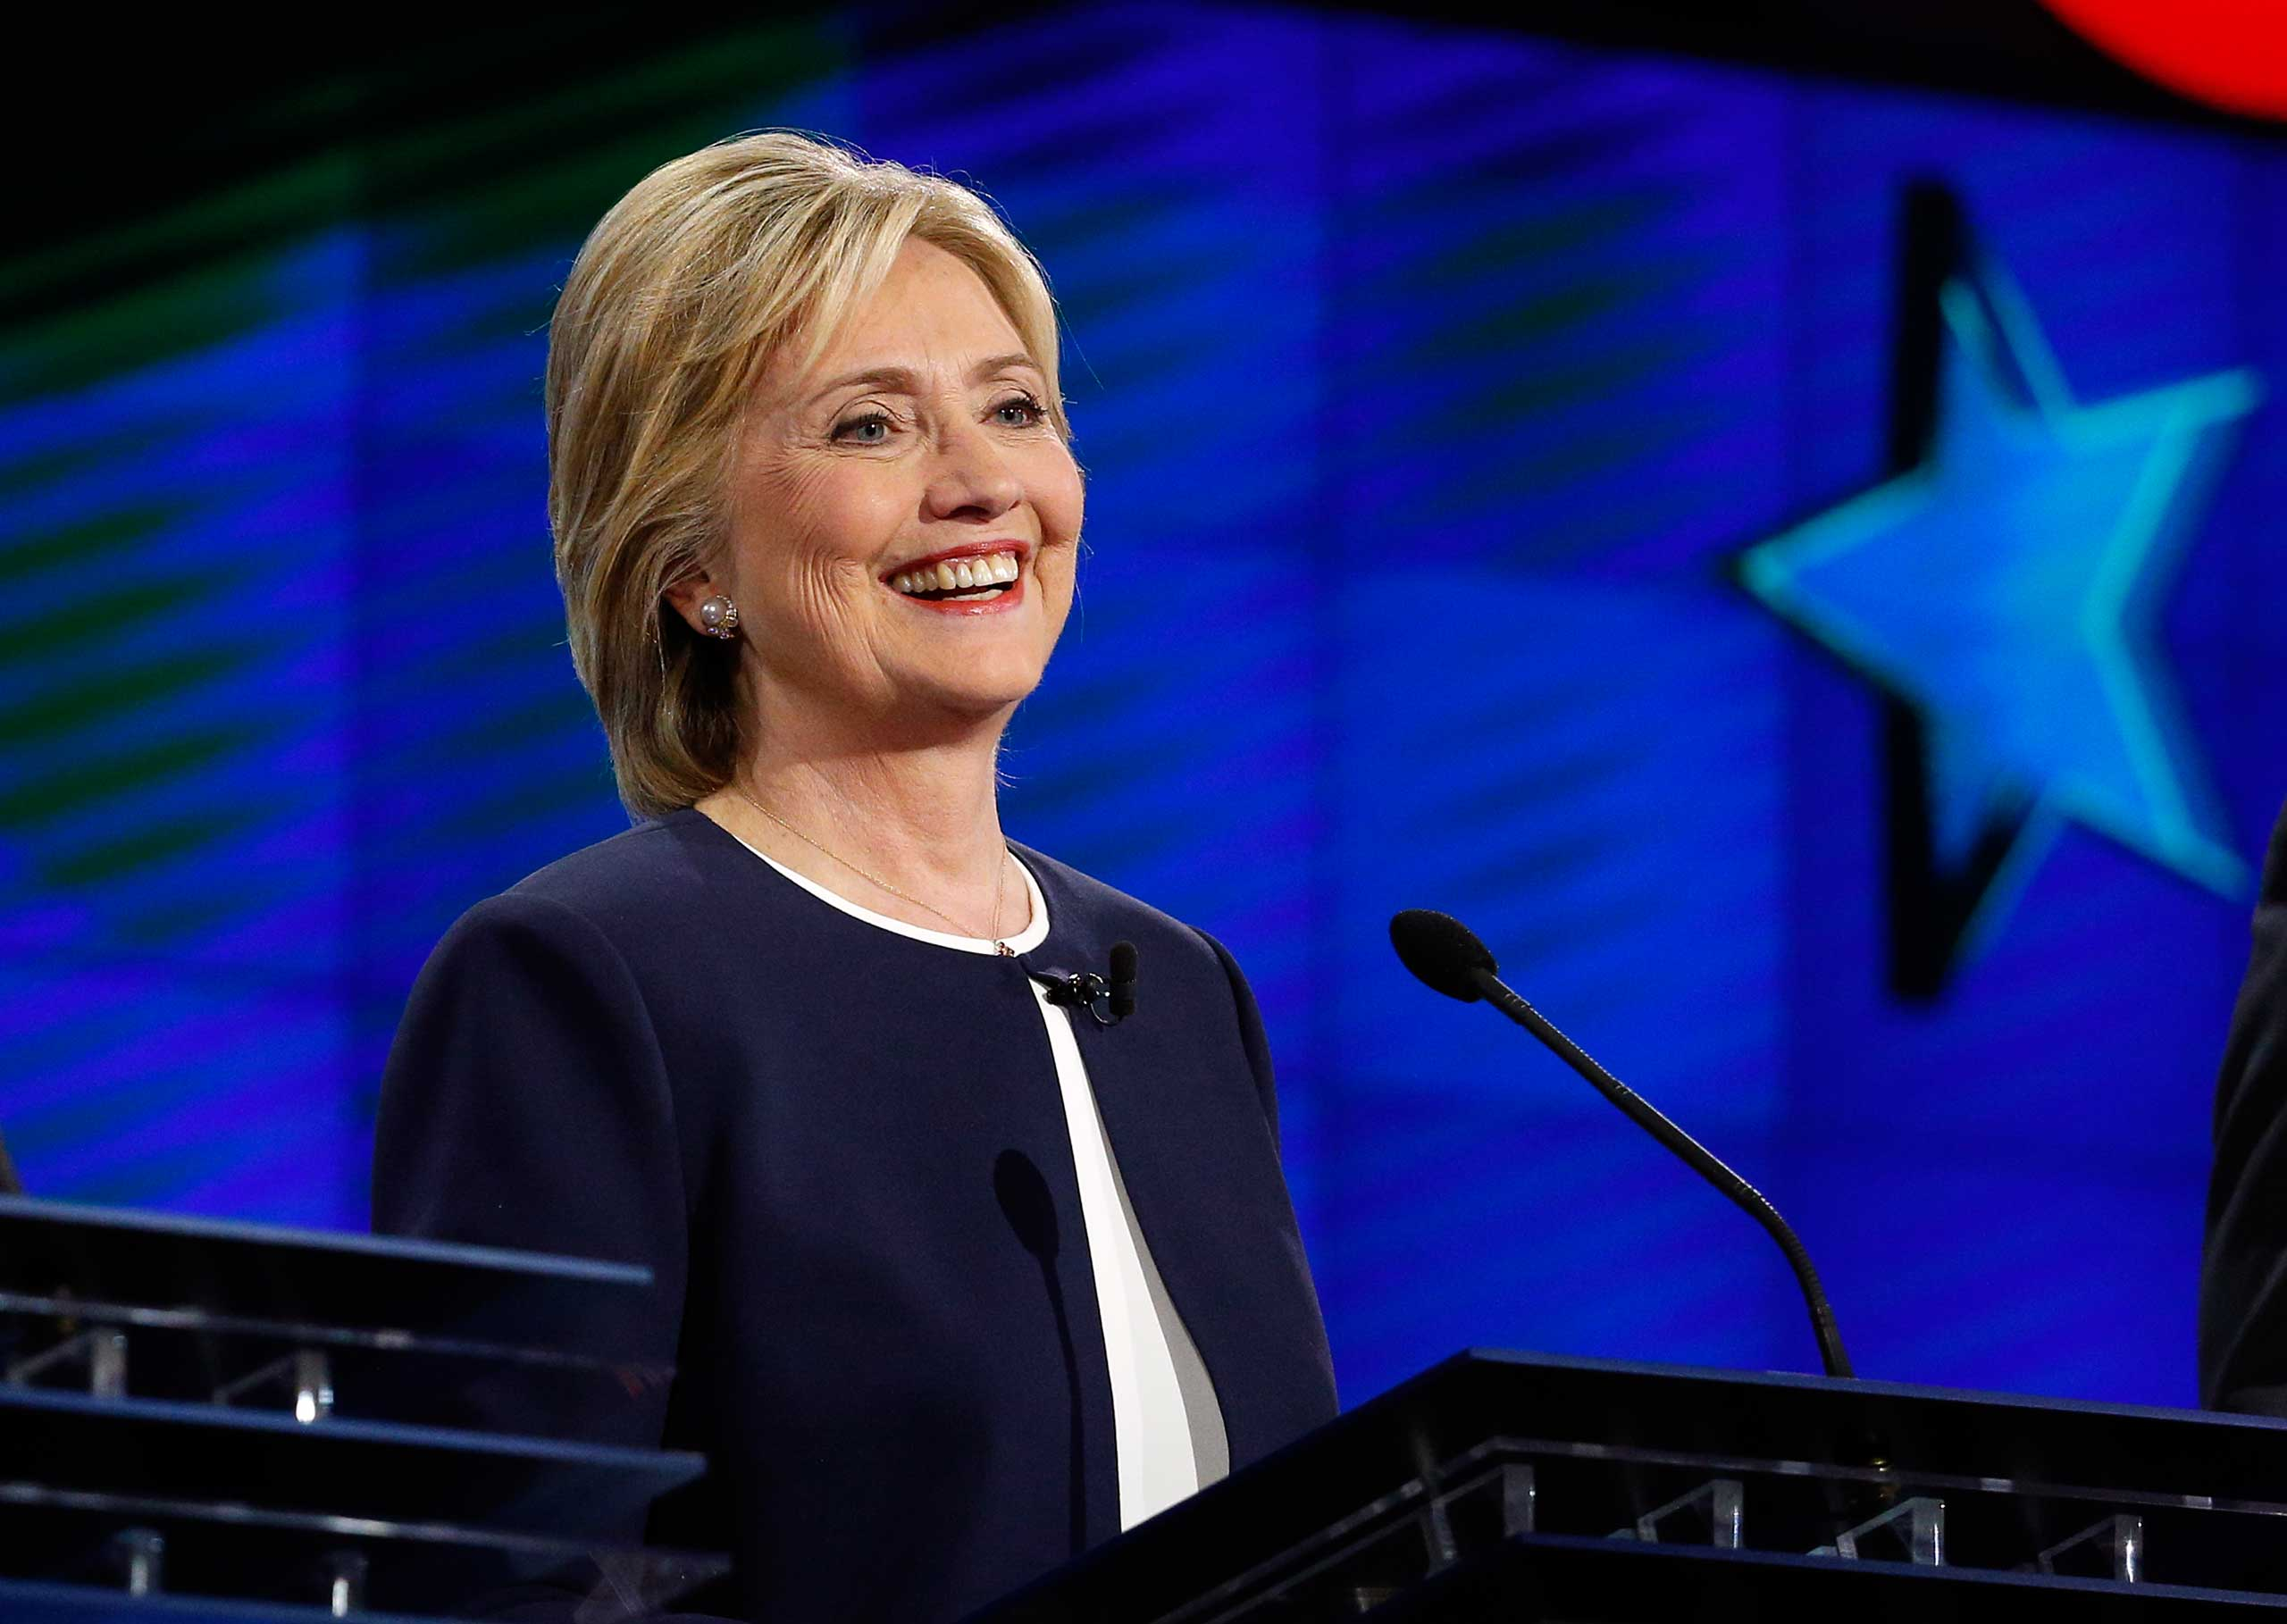 Hillary Rodham Clinton smiles during the CNN Democratic presidential debate, in Las Vegas, on Oct. 13, 2015.